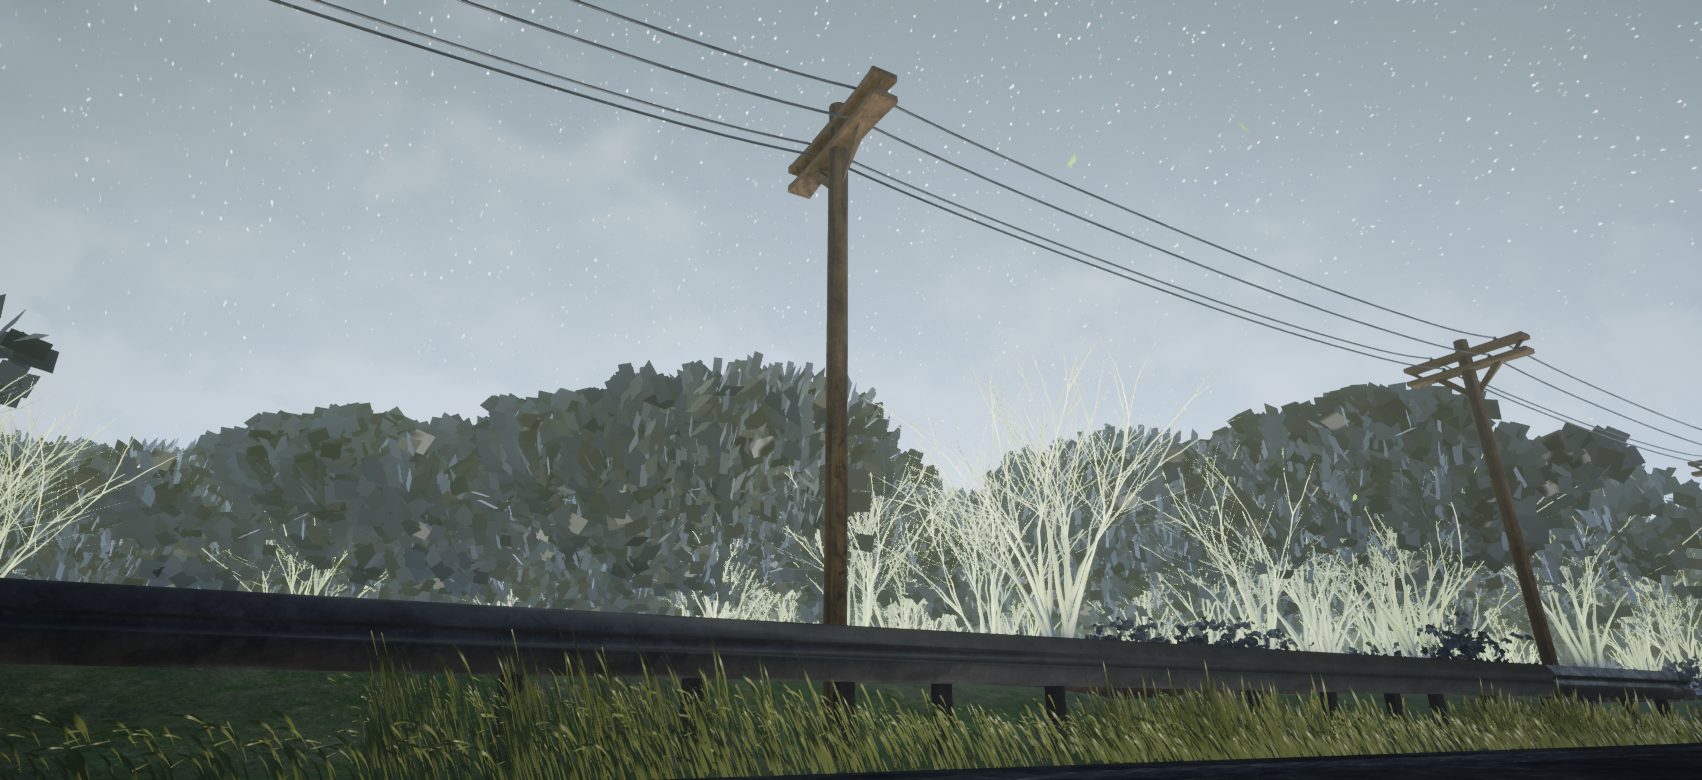 Close Up of Environment Scene Image